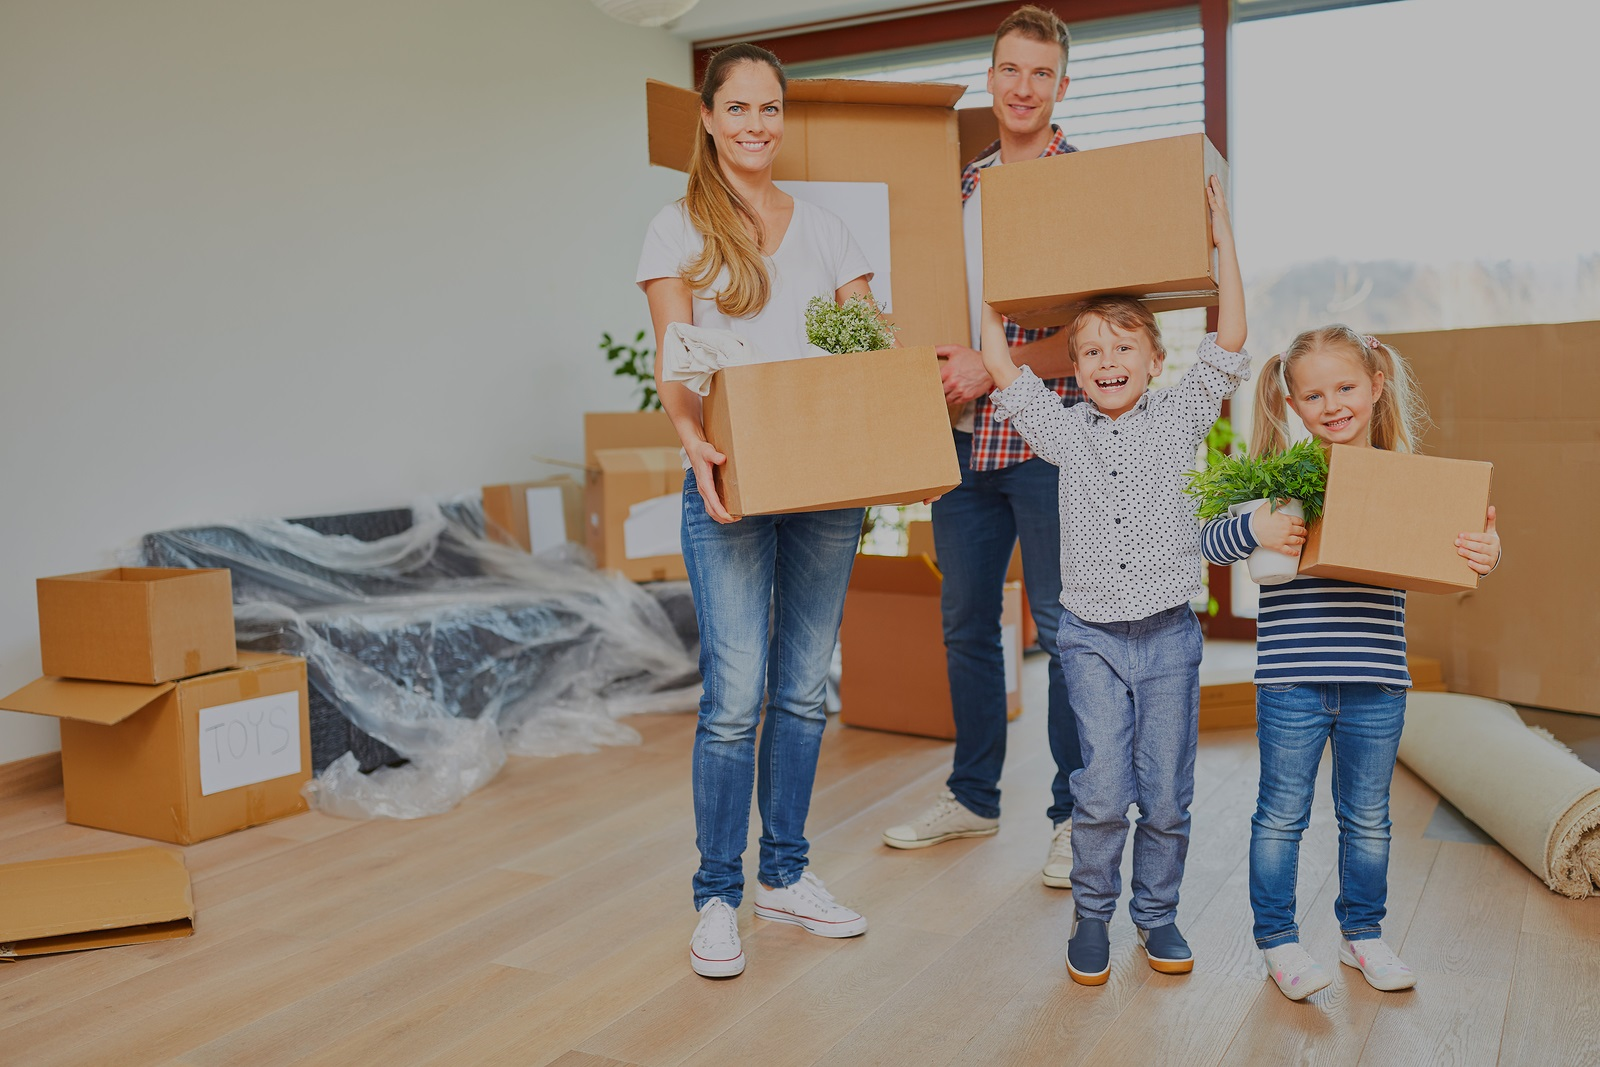 Parents and children moving